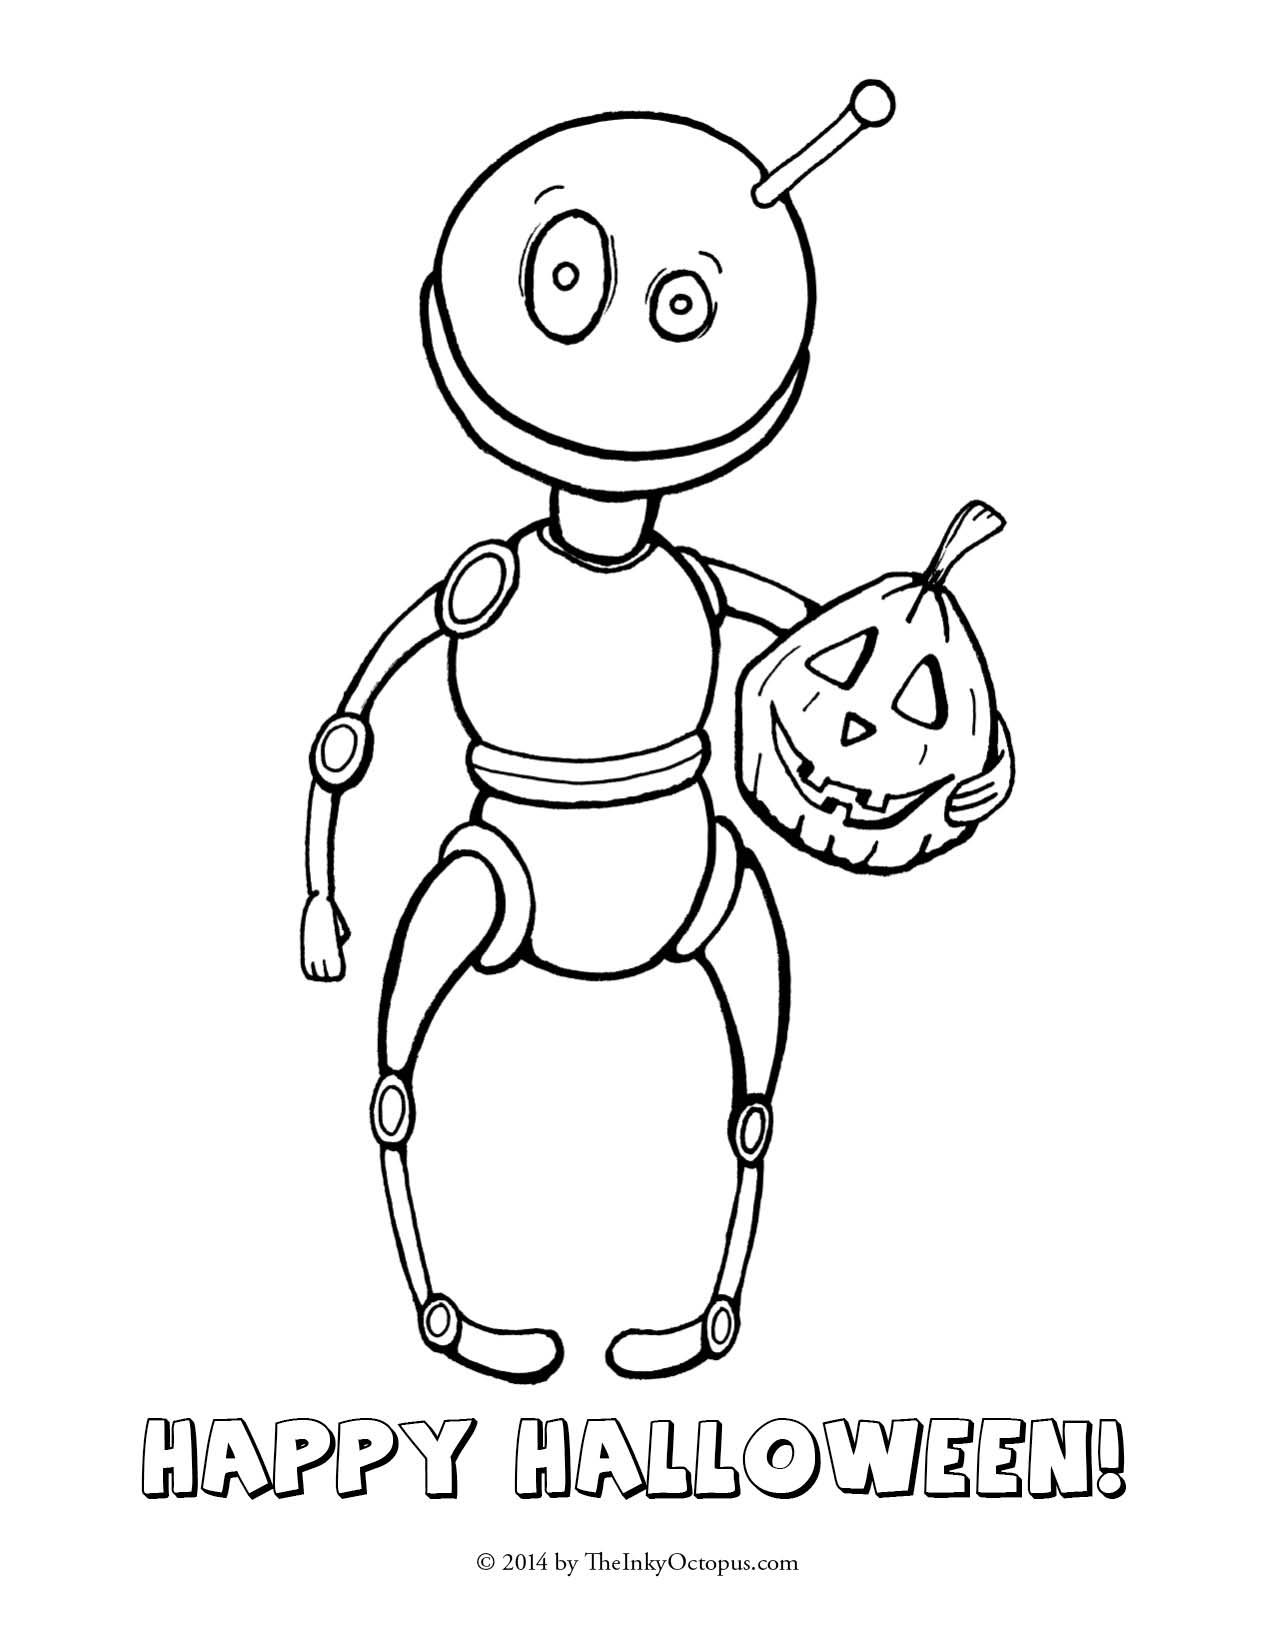 Printable Robot And Pumpkin Halloween Coloring Page From